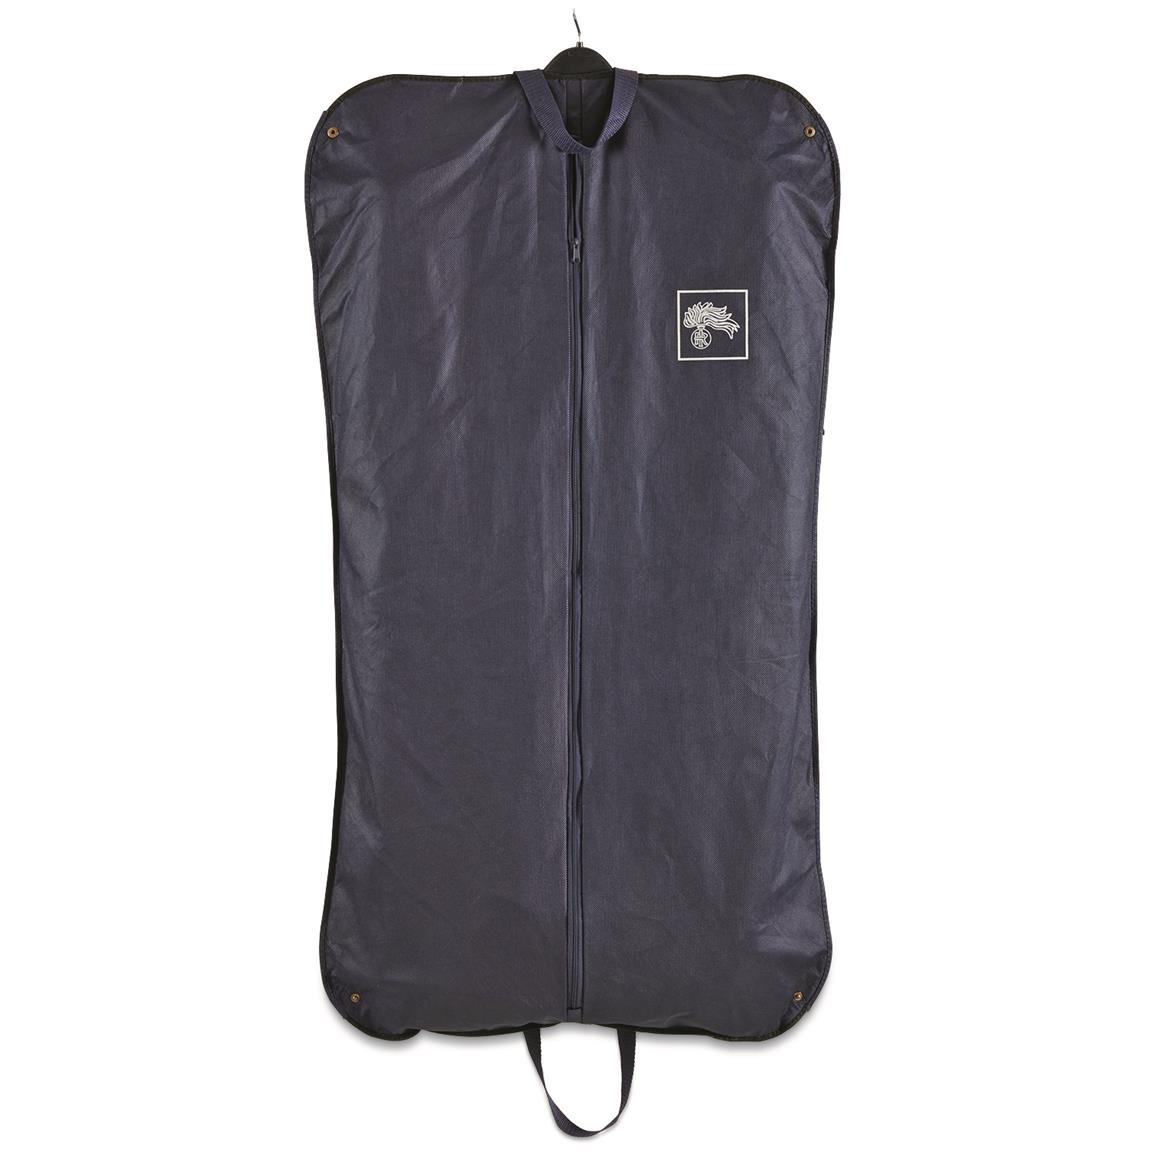 Brand new, still in the original garment bag!